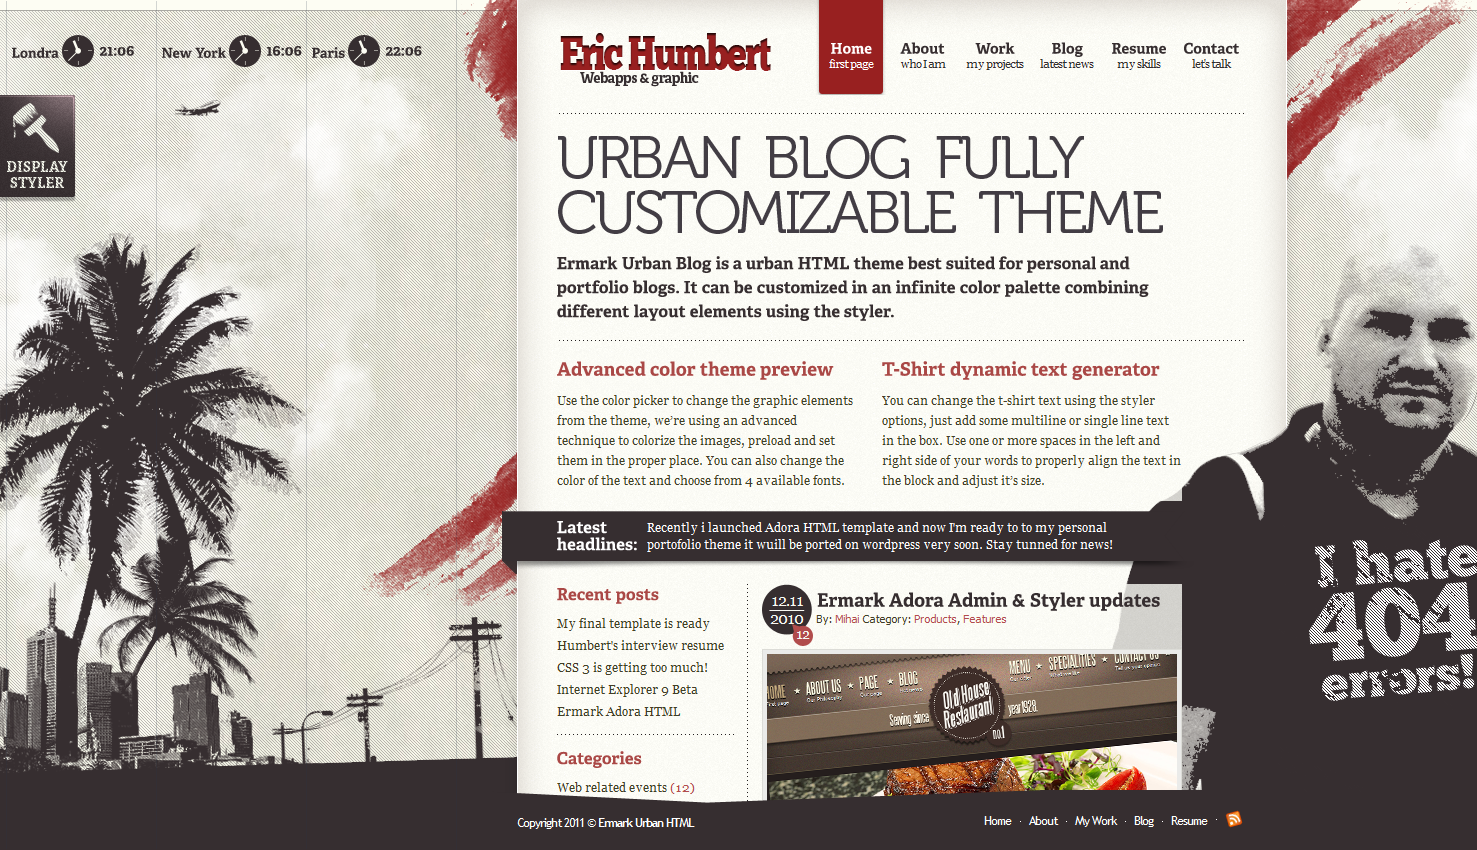 Ermark Urban Blog - HTML